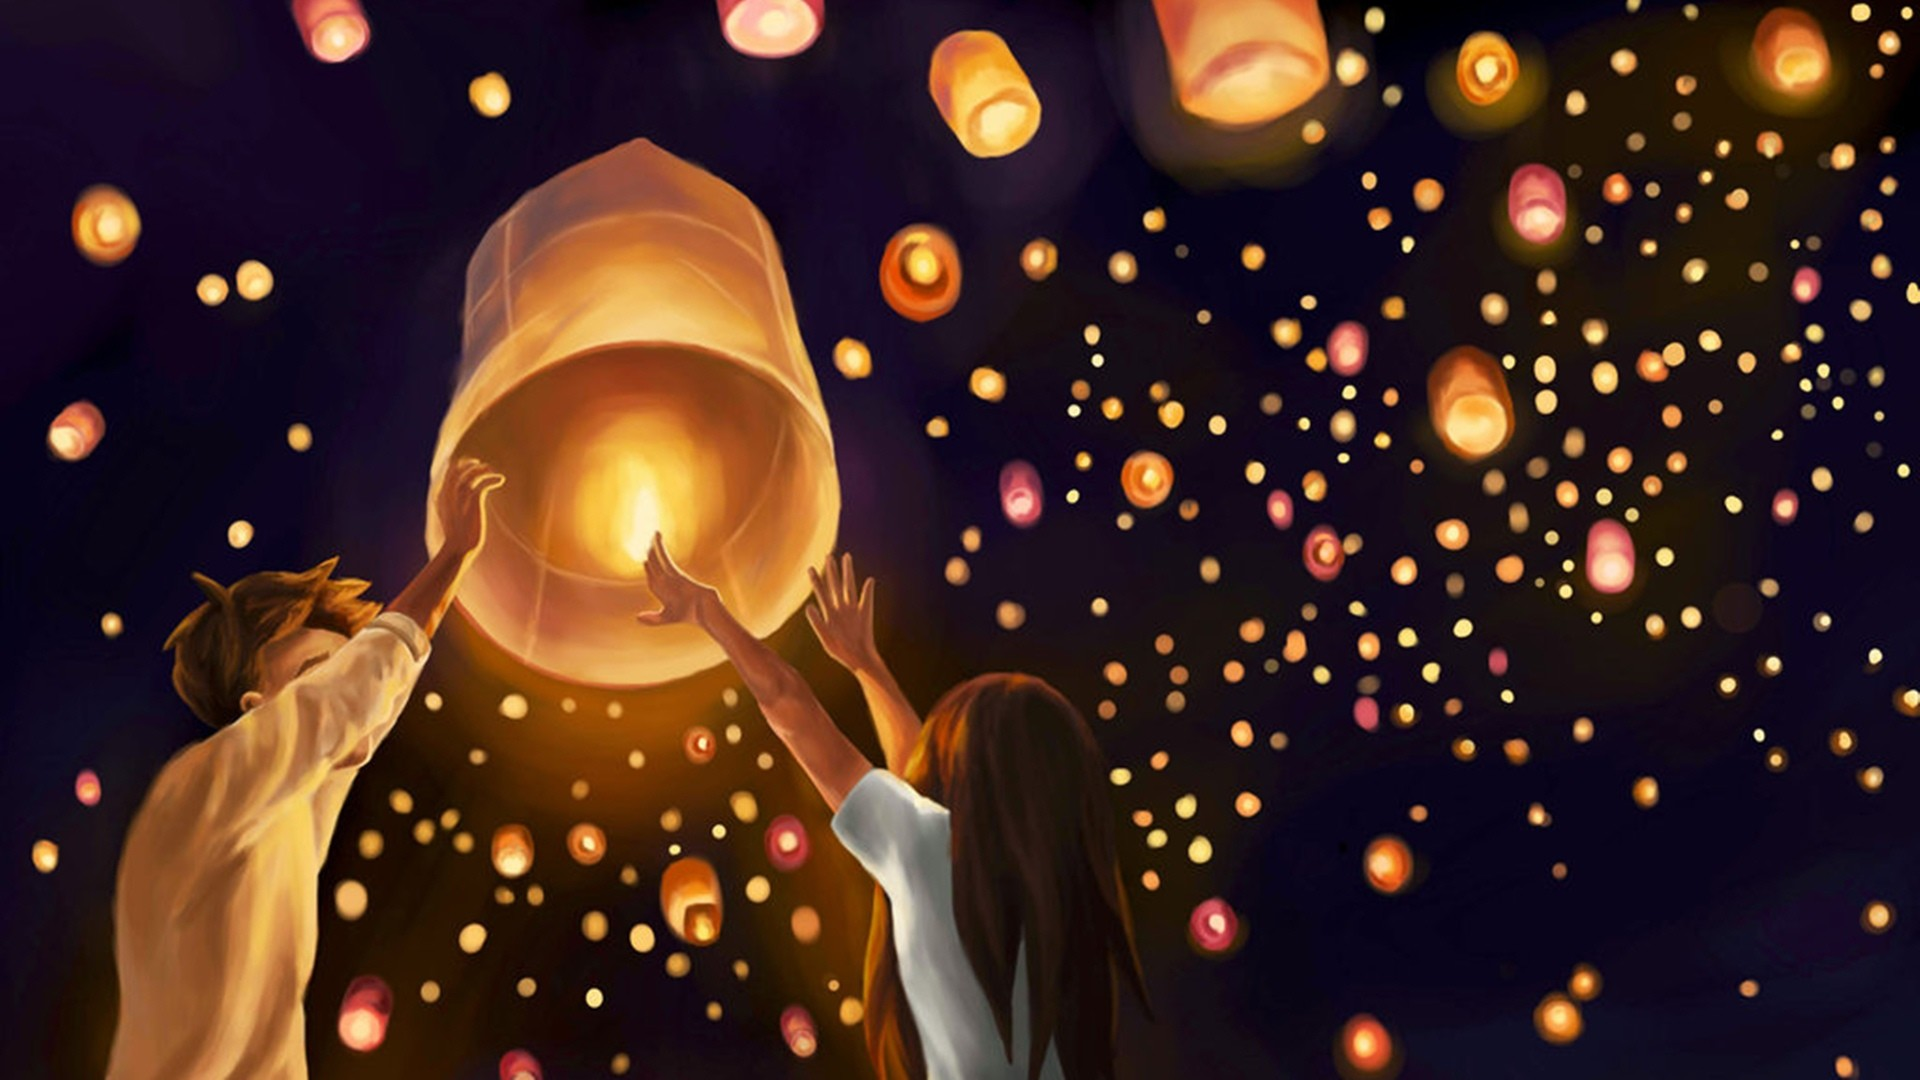 Sky Lanterns Wallpaper Iphone Lantern Festival Iphone Wallpaper Impremedia